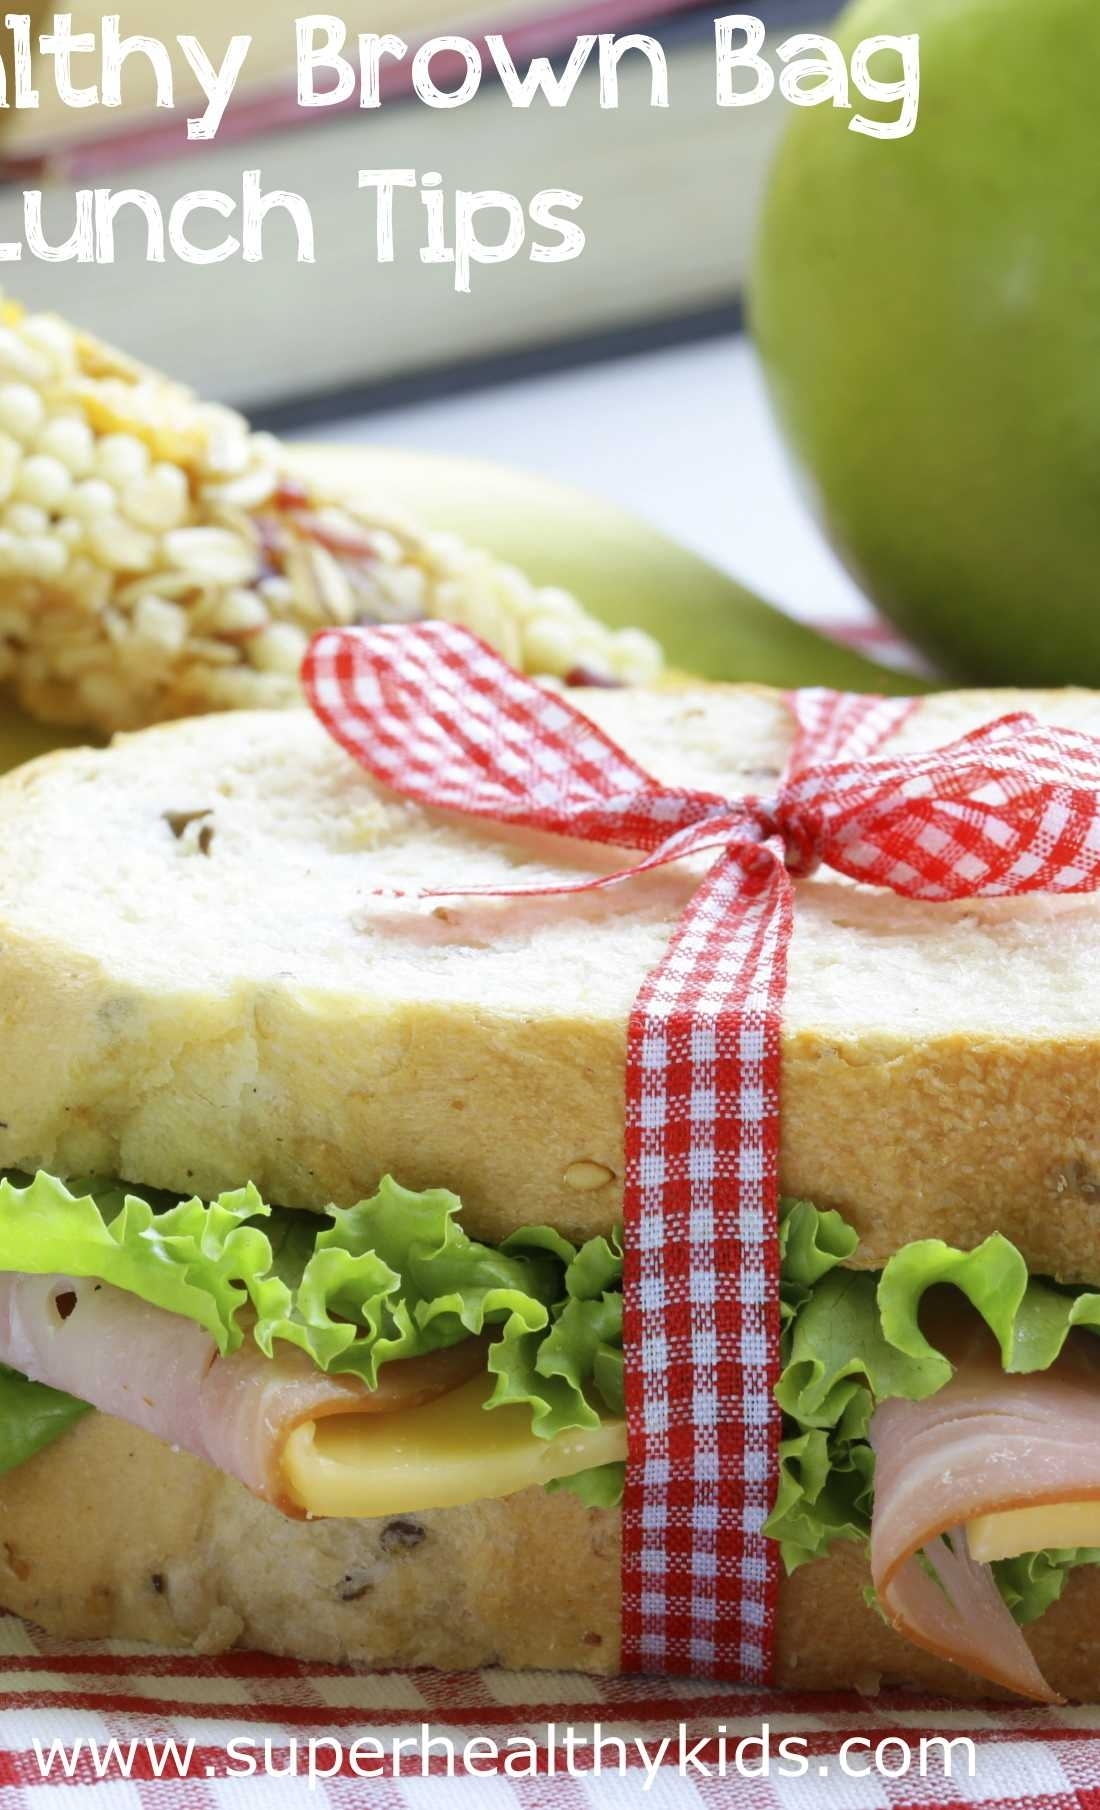 10 Beautiful Healthy Brown Bag Lunch Ideas %name 2021